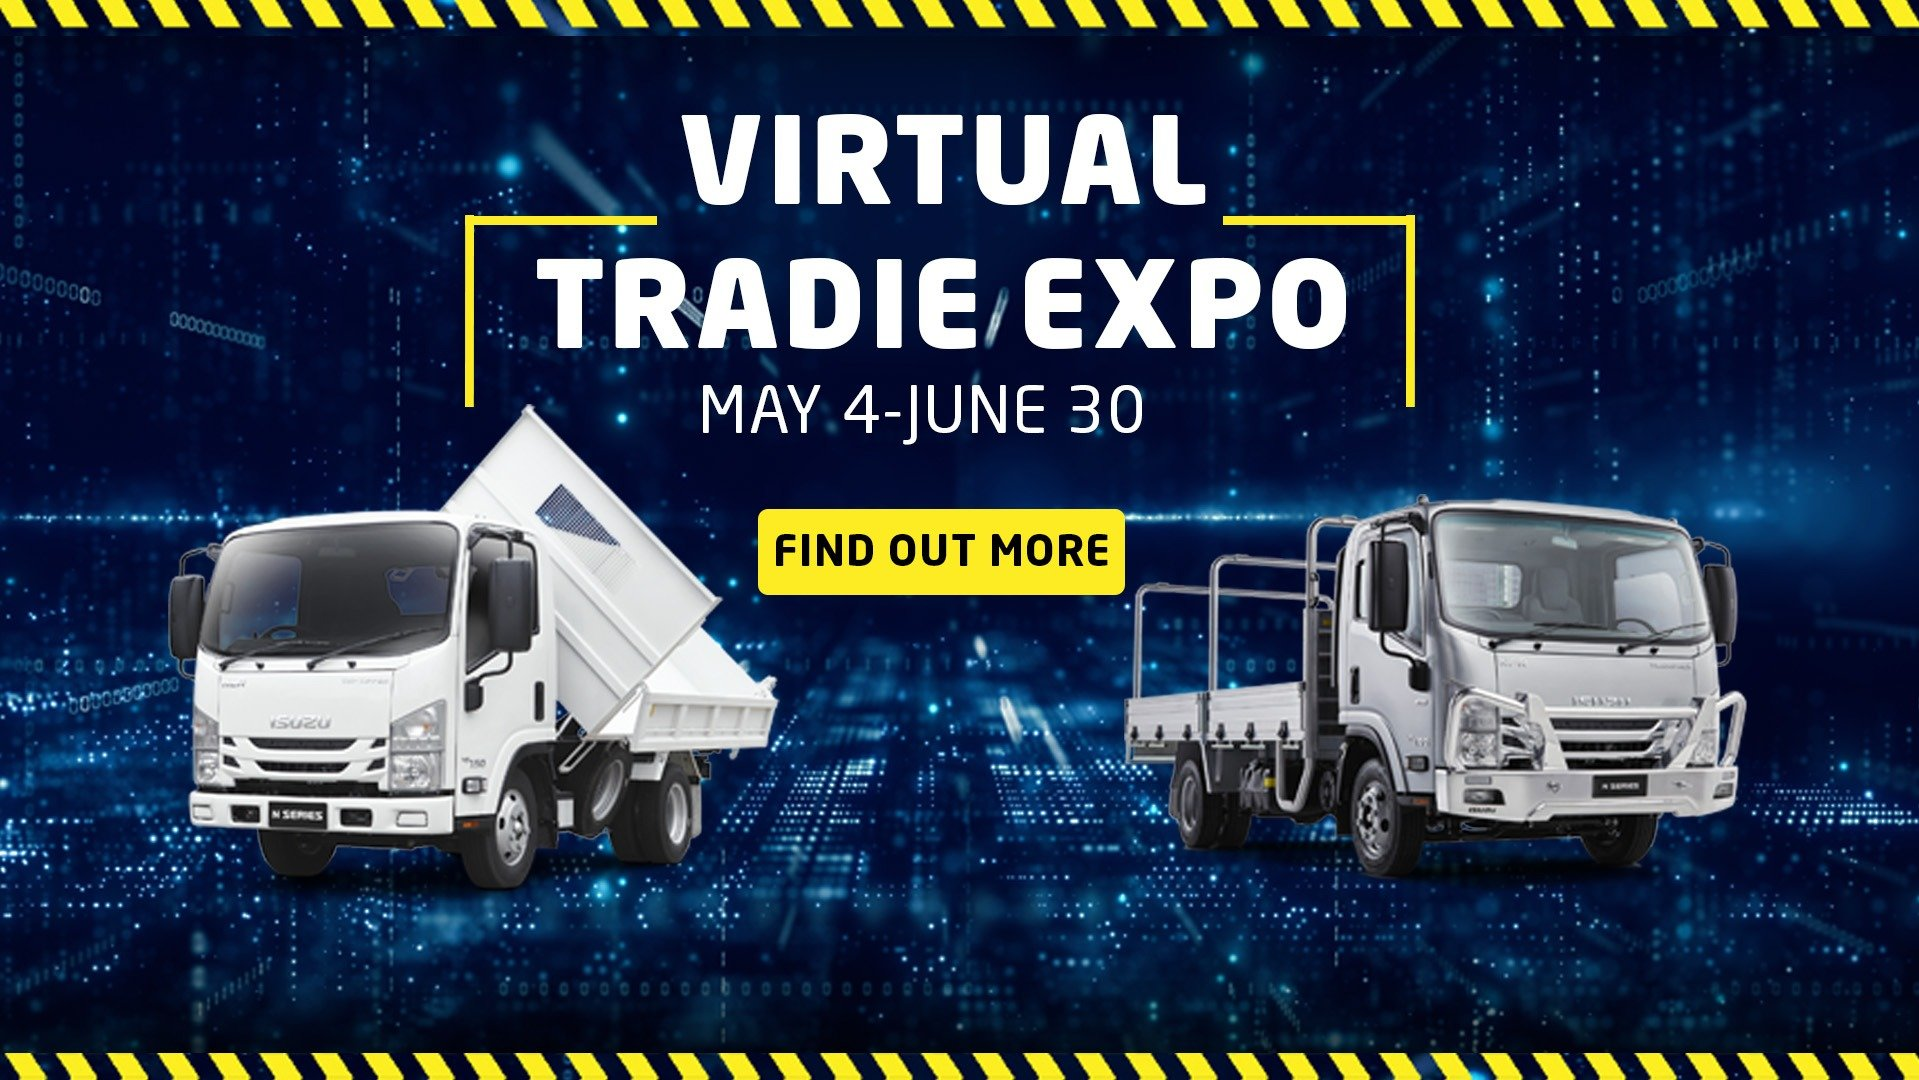 Virtual Tradie Expo 2020!